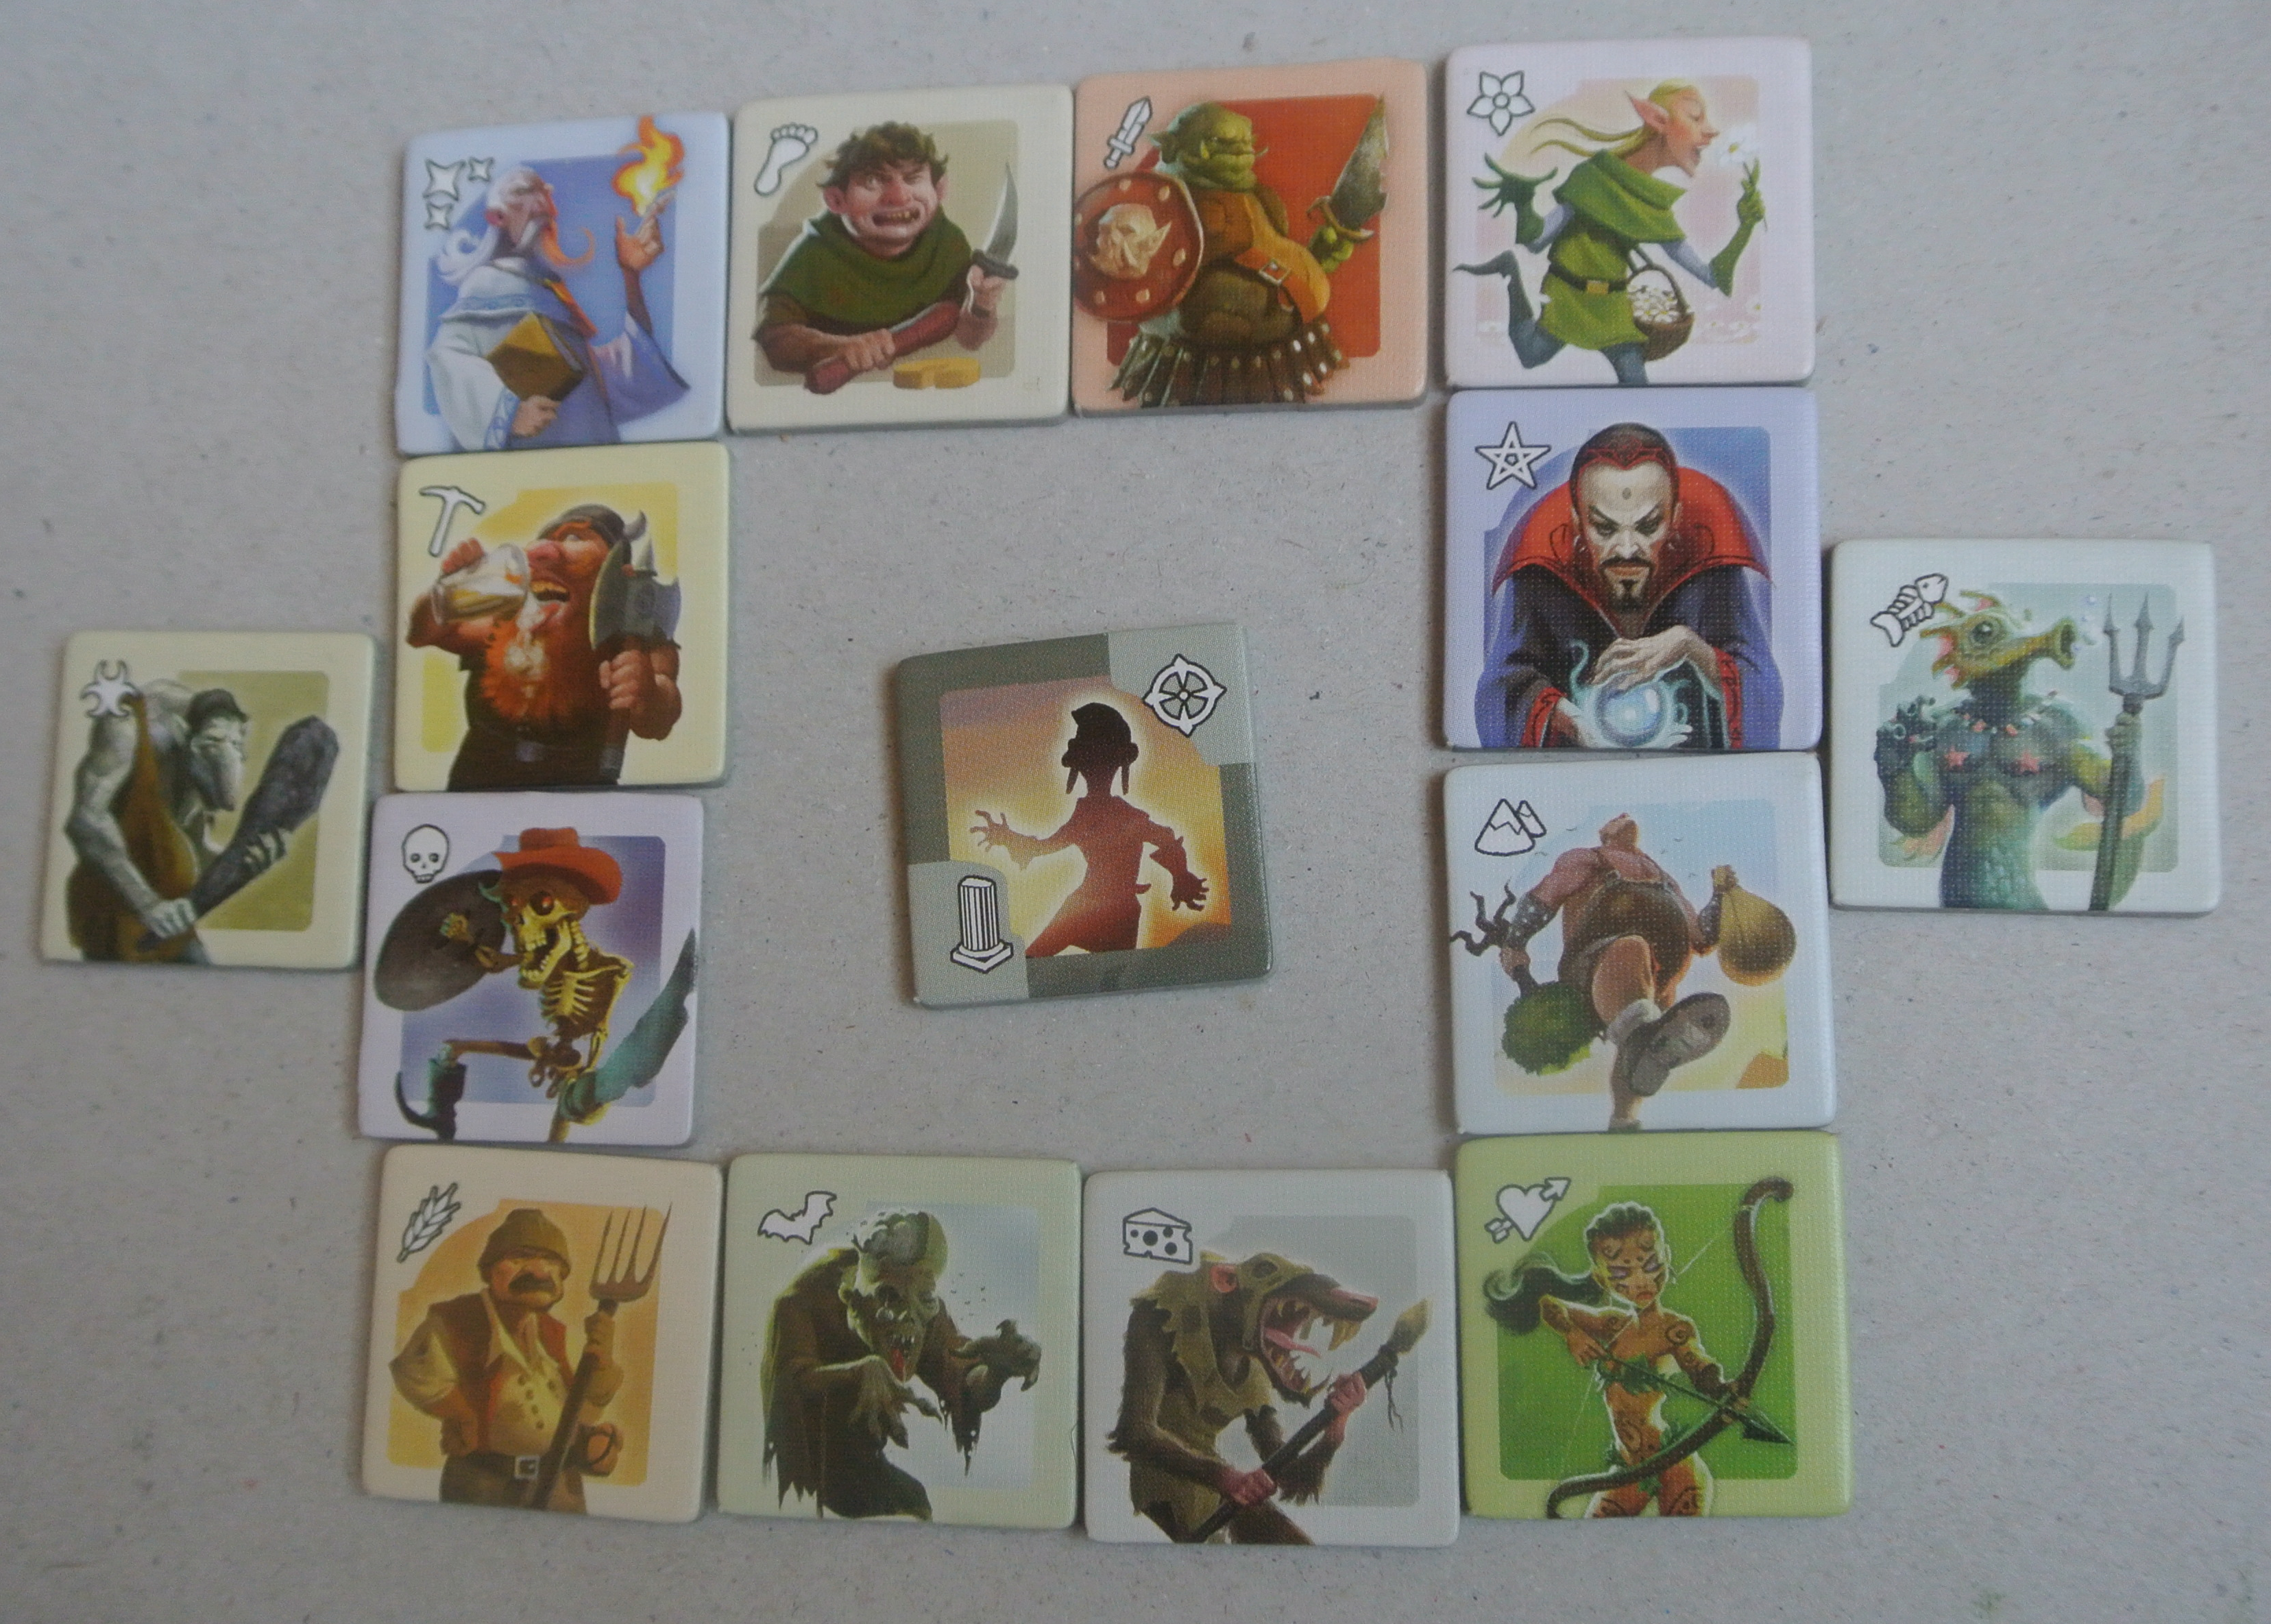 Race tokens from Small World, with the Lost Tribes in the center. Image used with permission of the author, and reproduced for purposes of critique.